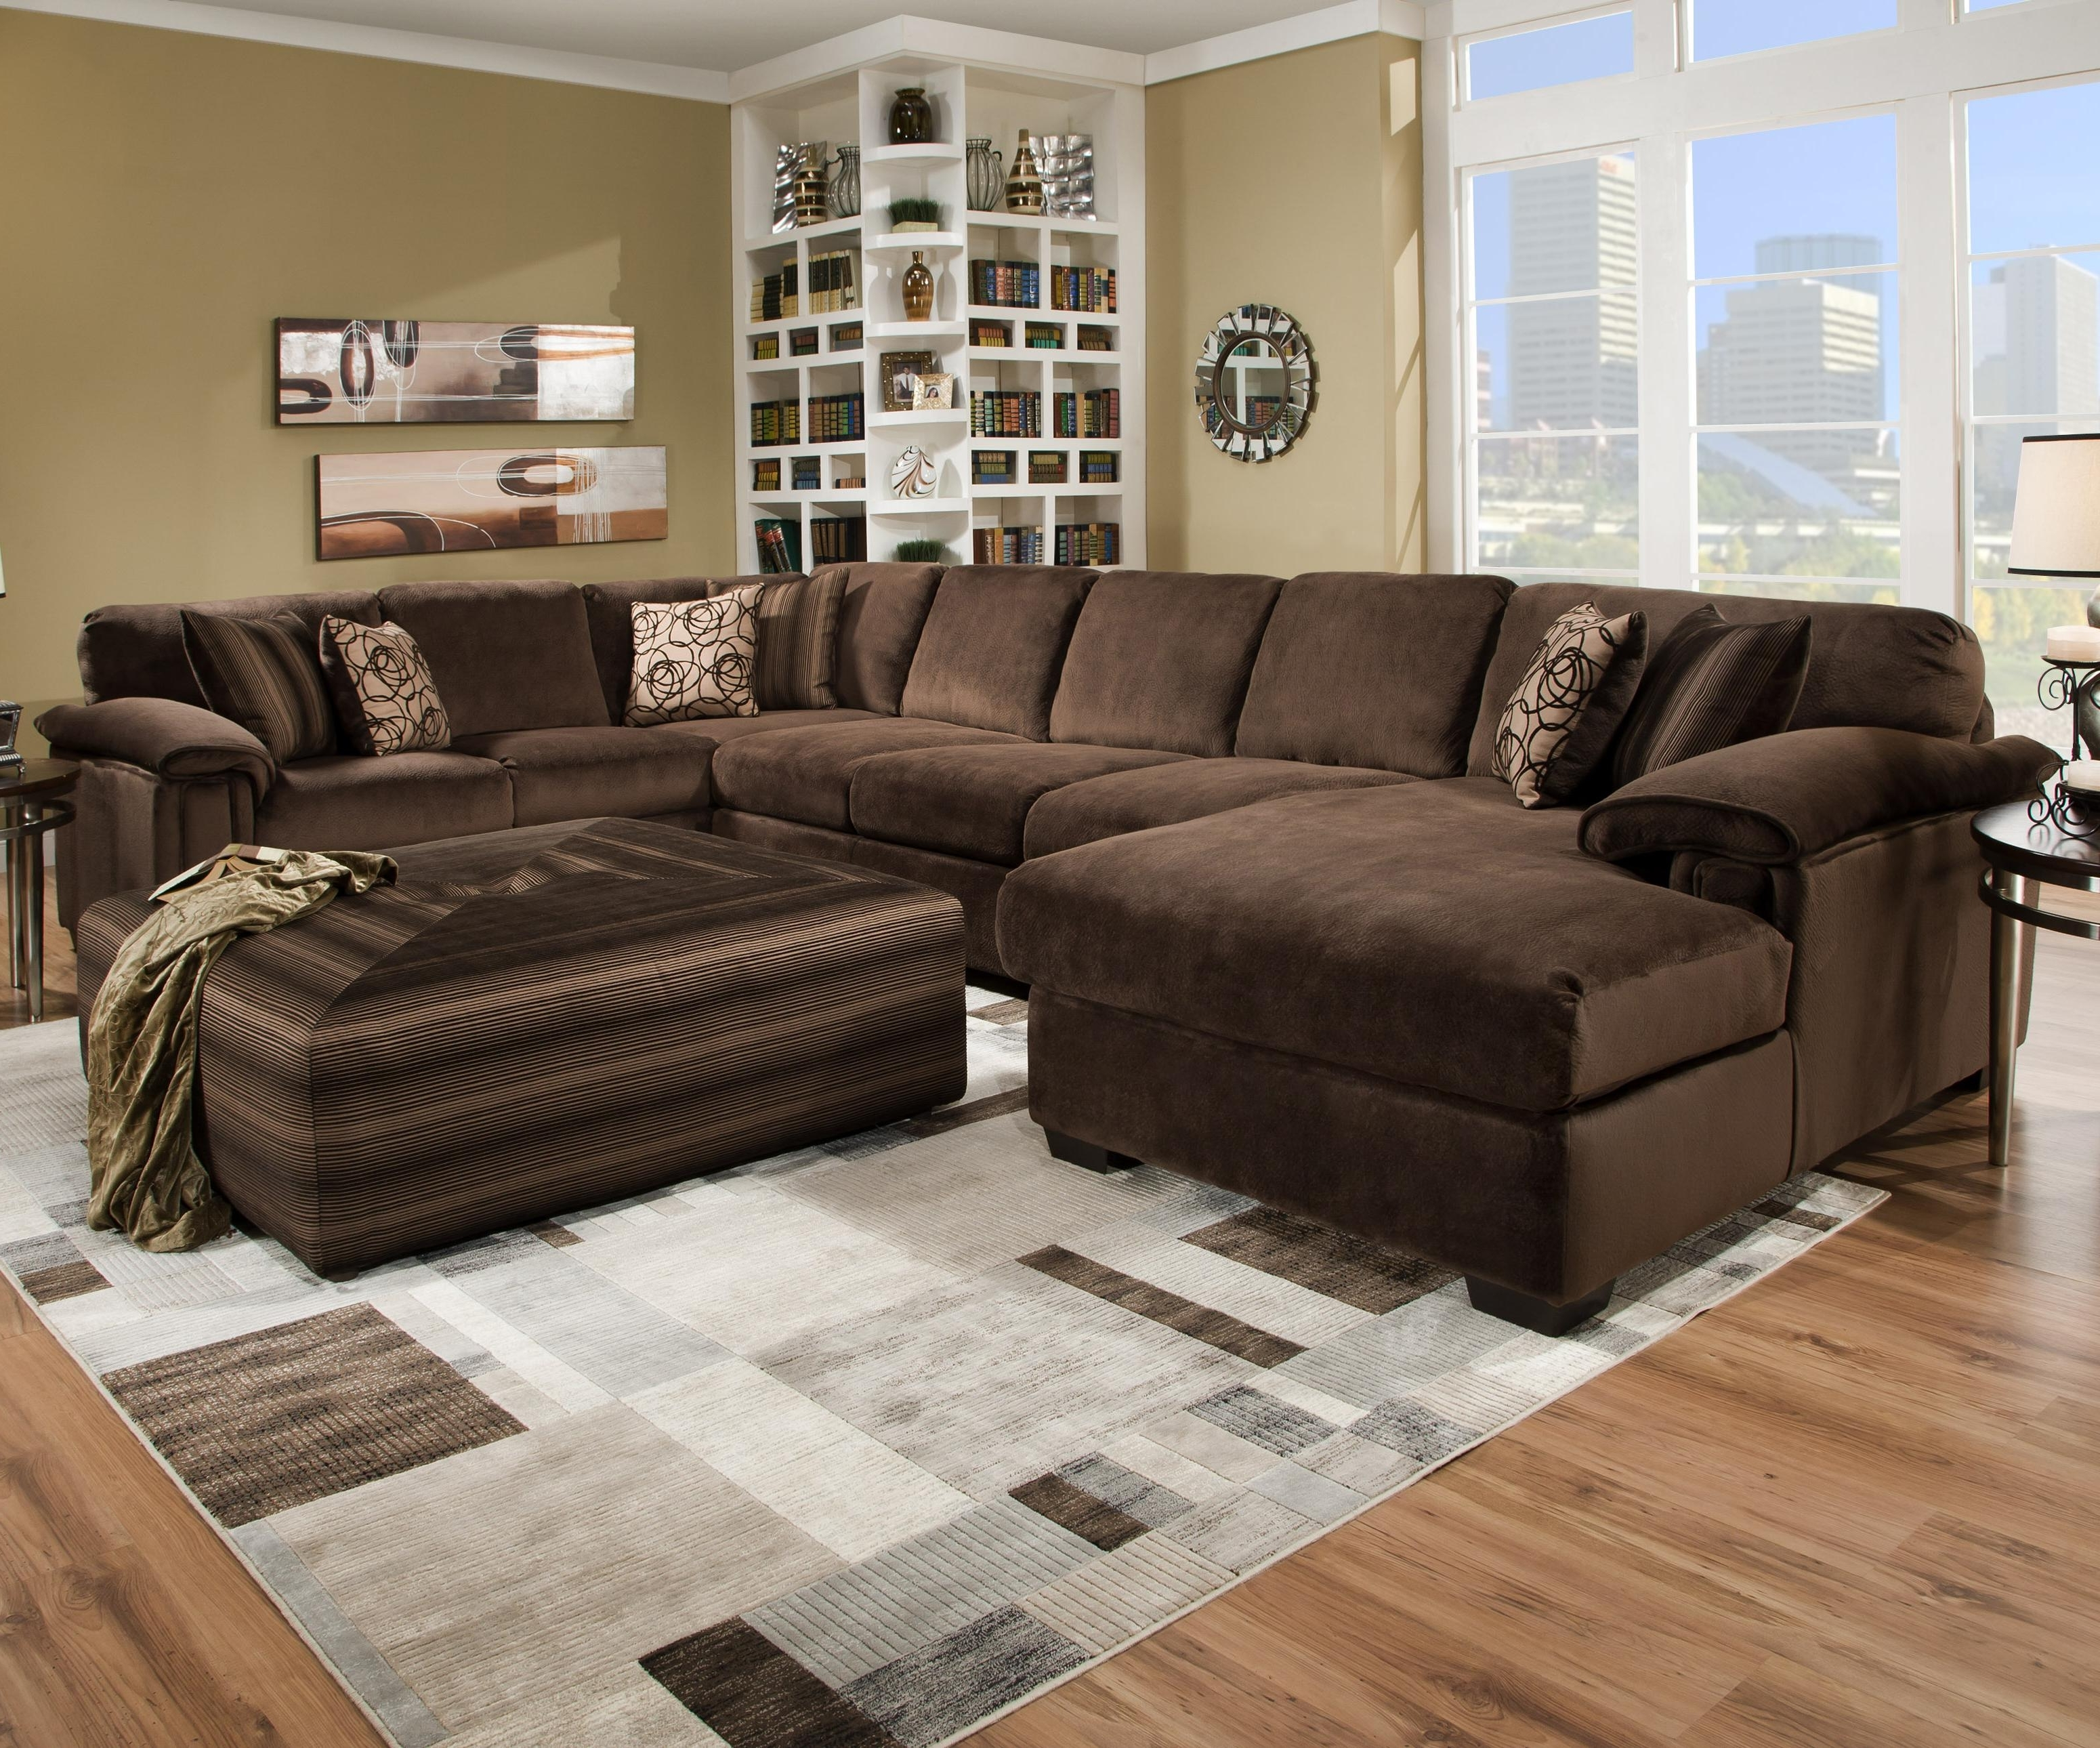 Large Sectional Sofa With Ottoman (View 12 of 15)